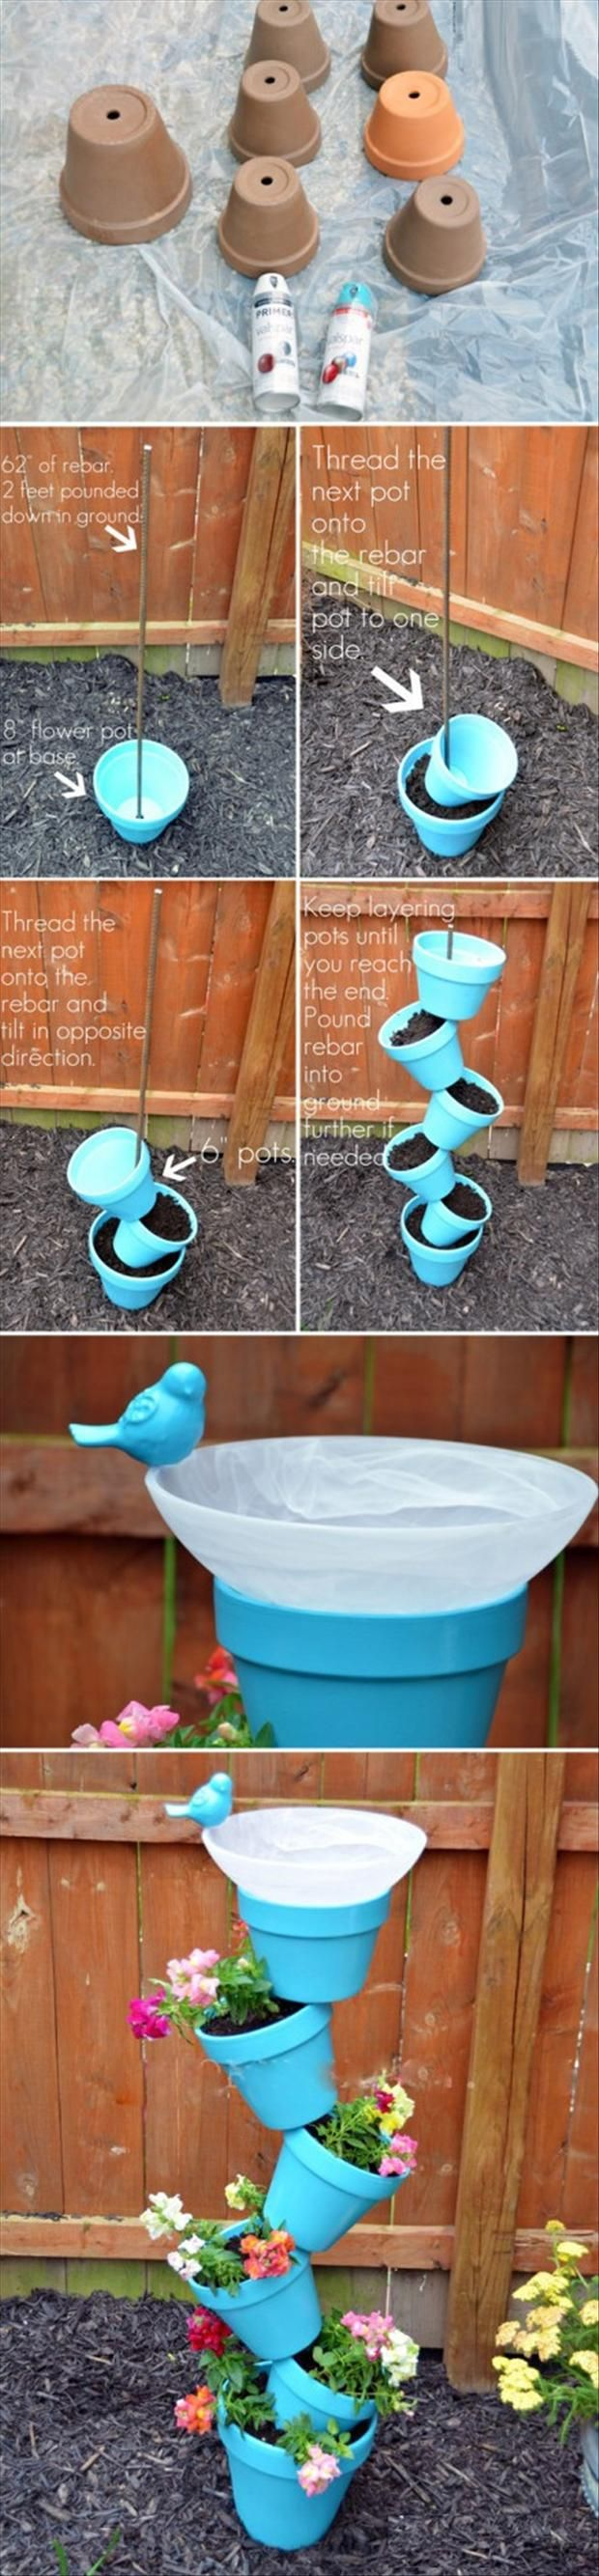 Cute Plant and Bird Bath Garden Ornament